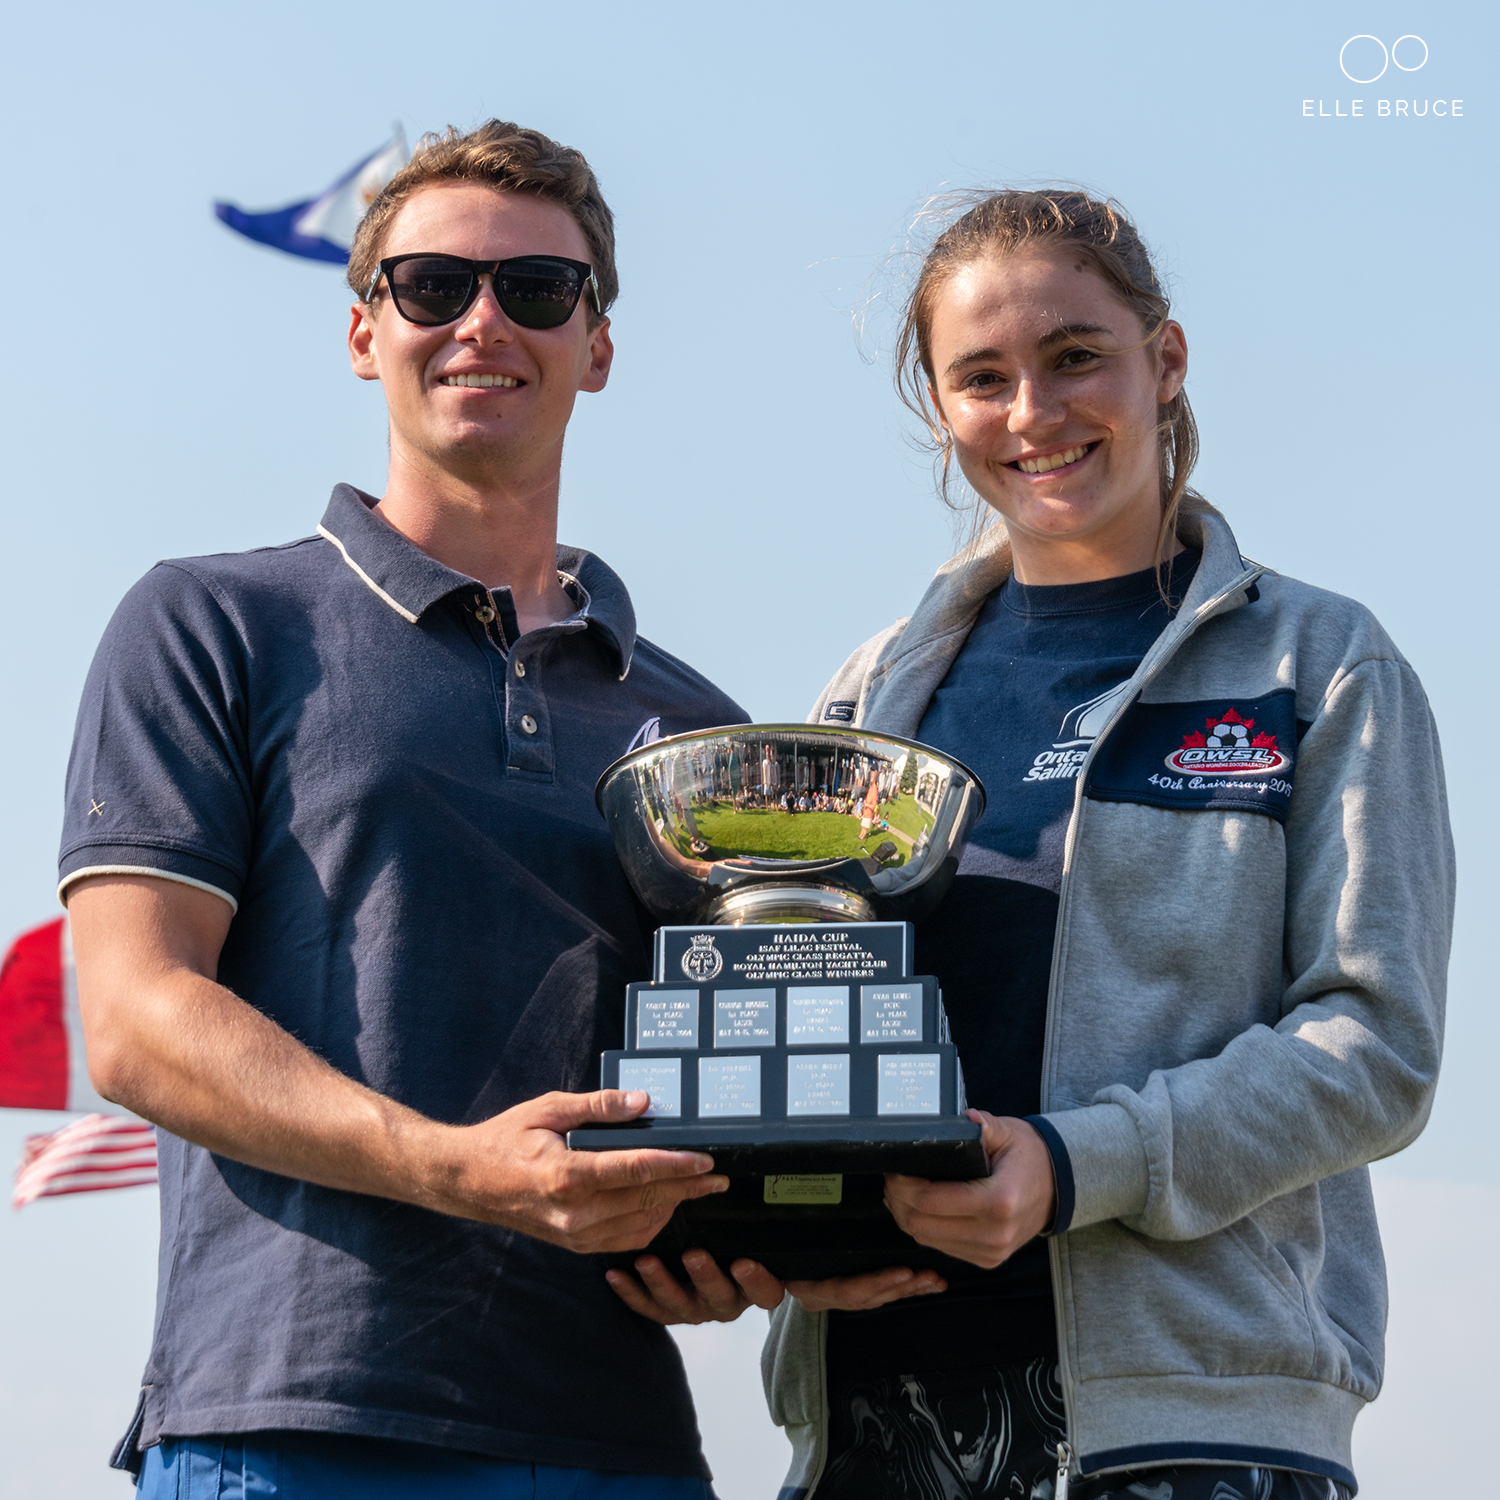 Honoured to share the Haida Cup Award with fellow Ontario Sailing Teammate Clara Gravely.